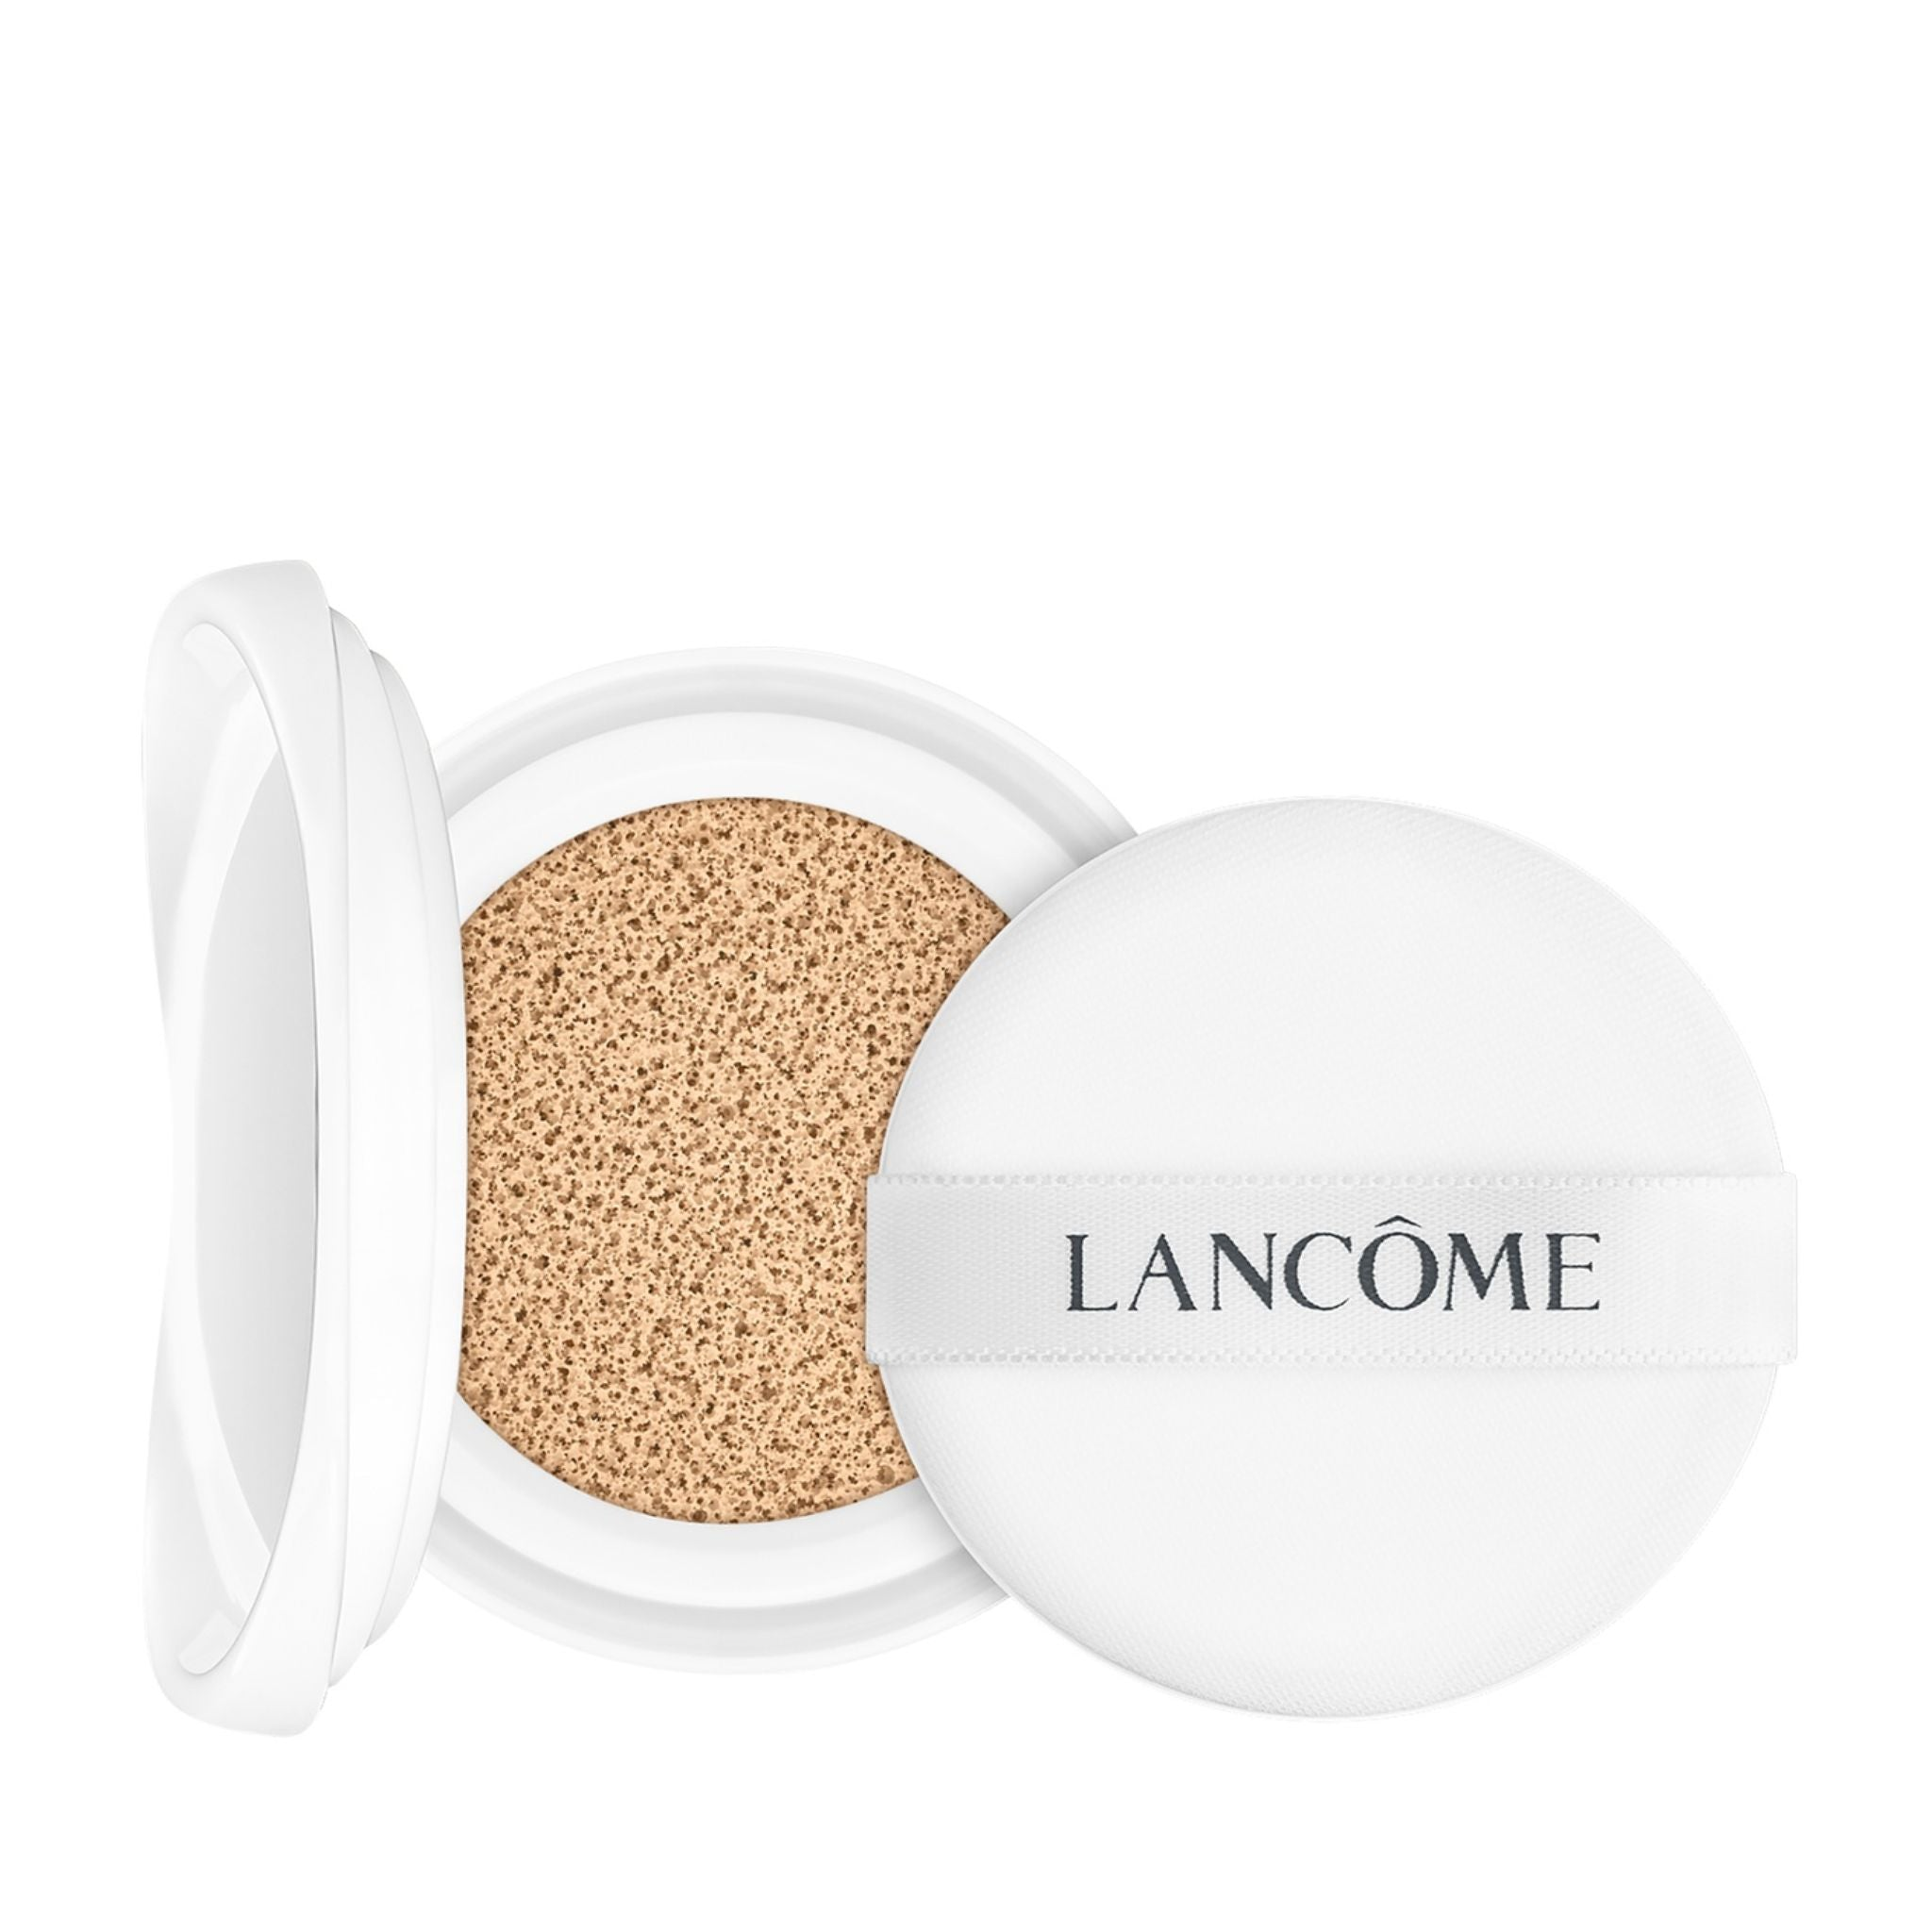 Lancome Teint Clarifique Cushion Light Coverage Refill Shade BO-01